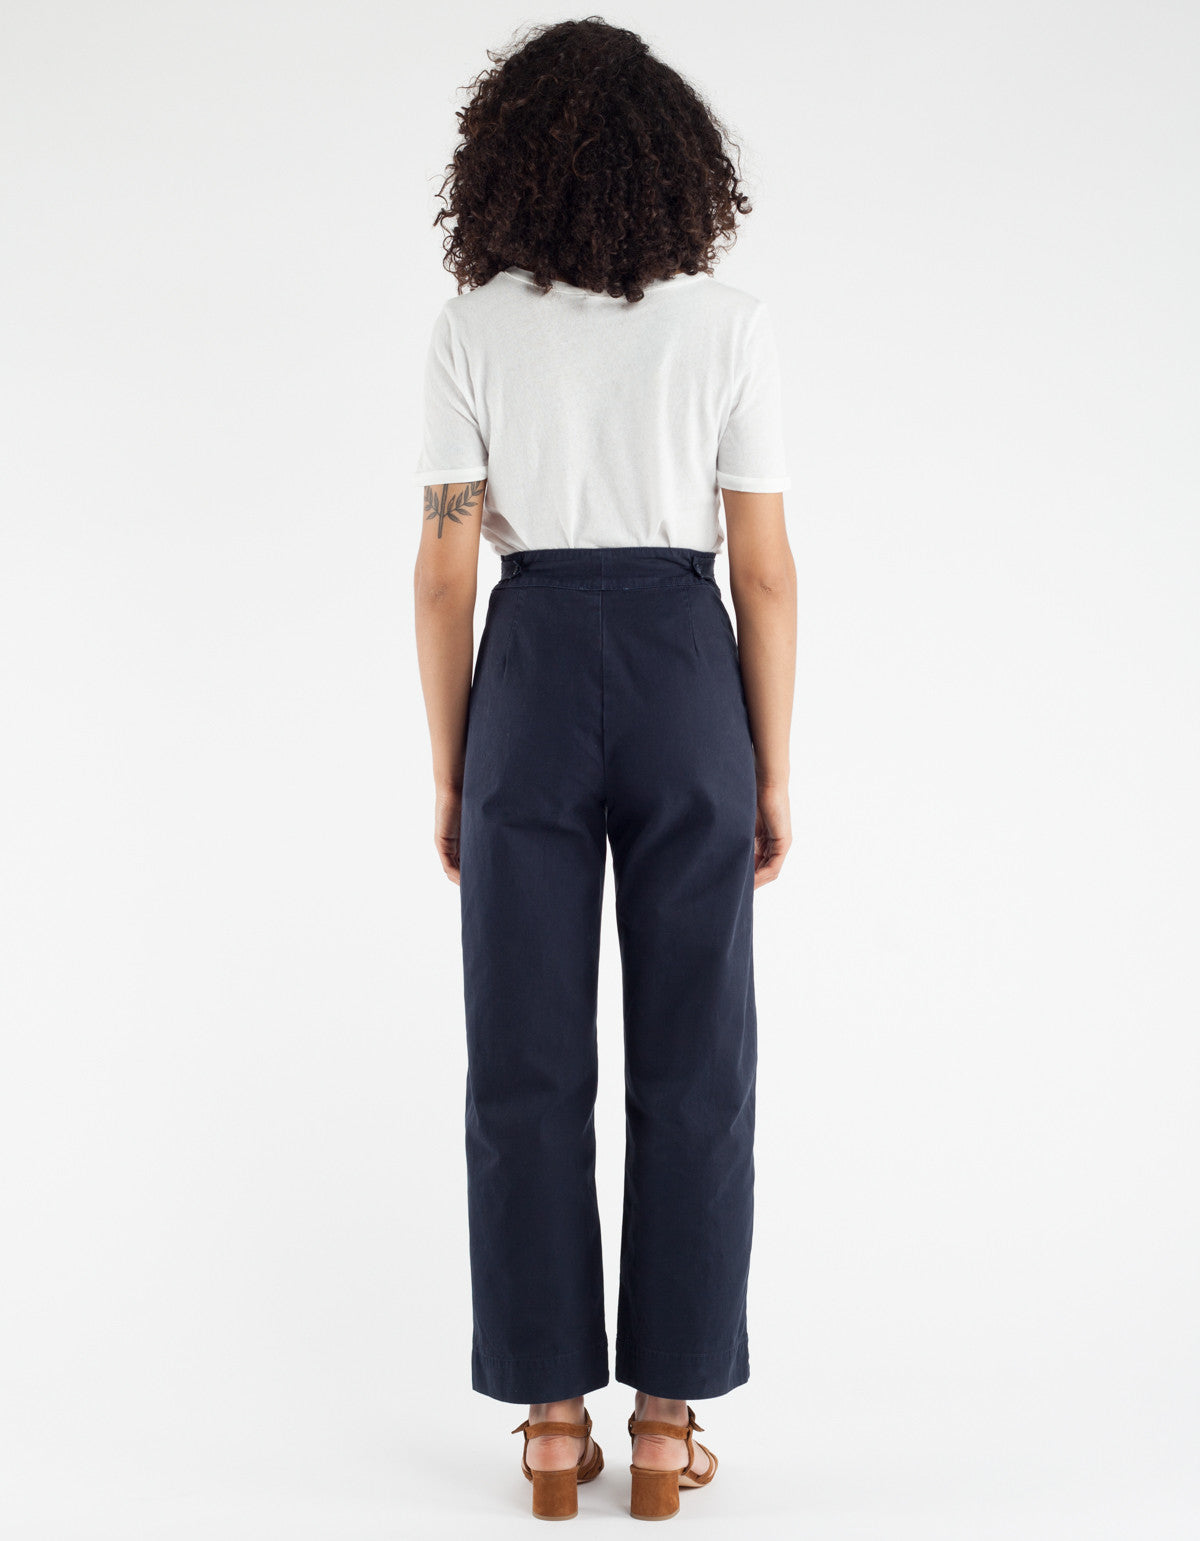 Uniform Trouser 13